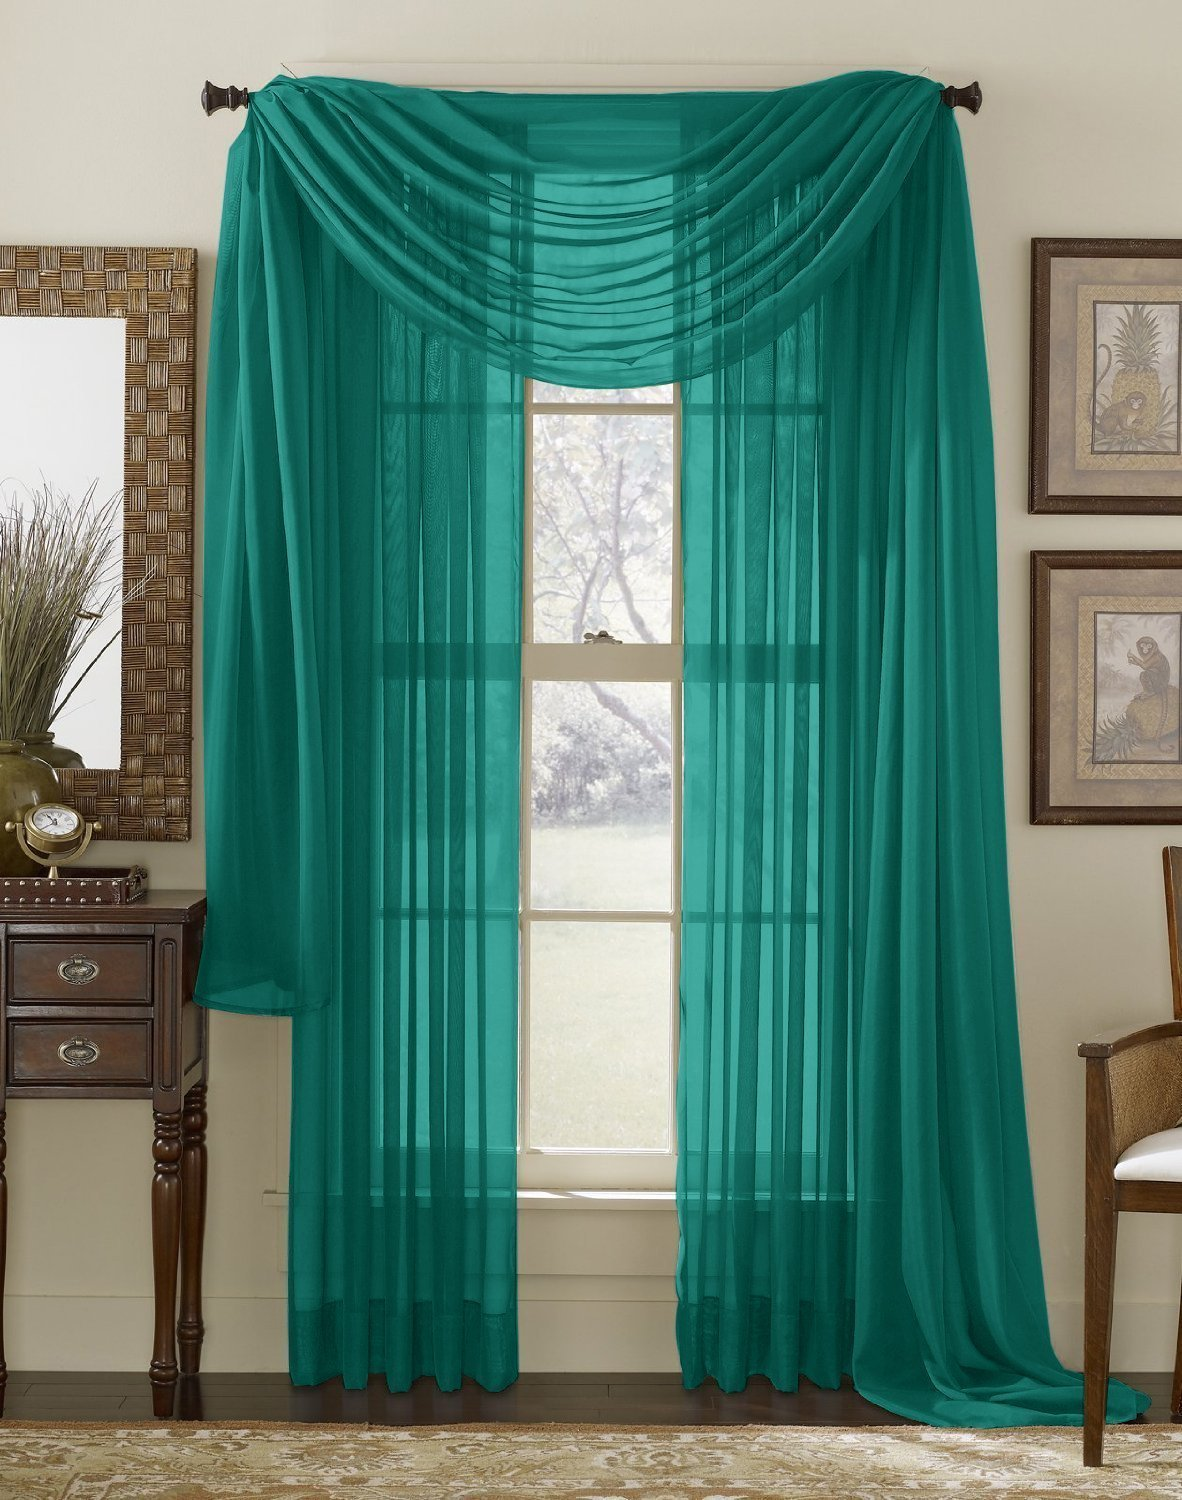 Teal curtain panels - Me Grey Teal 2 Pack 108 Inch X 84 Inch Window Curtain Sheer Panels